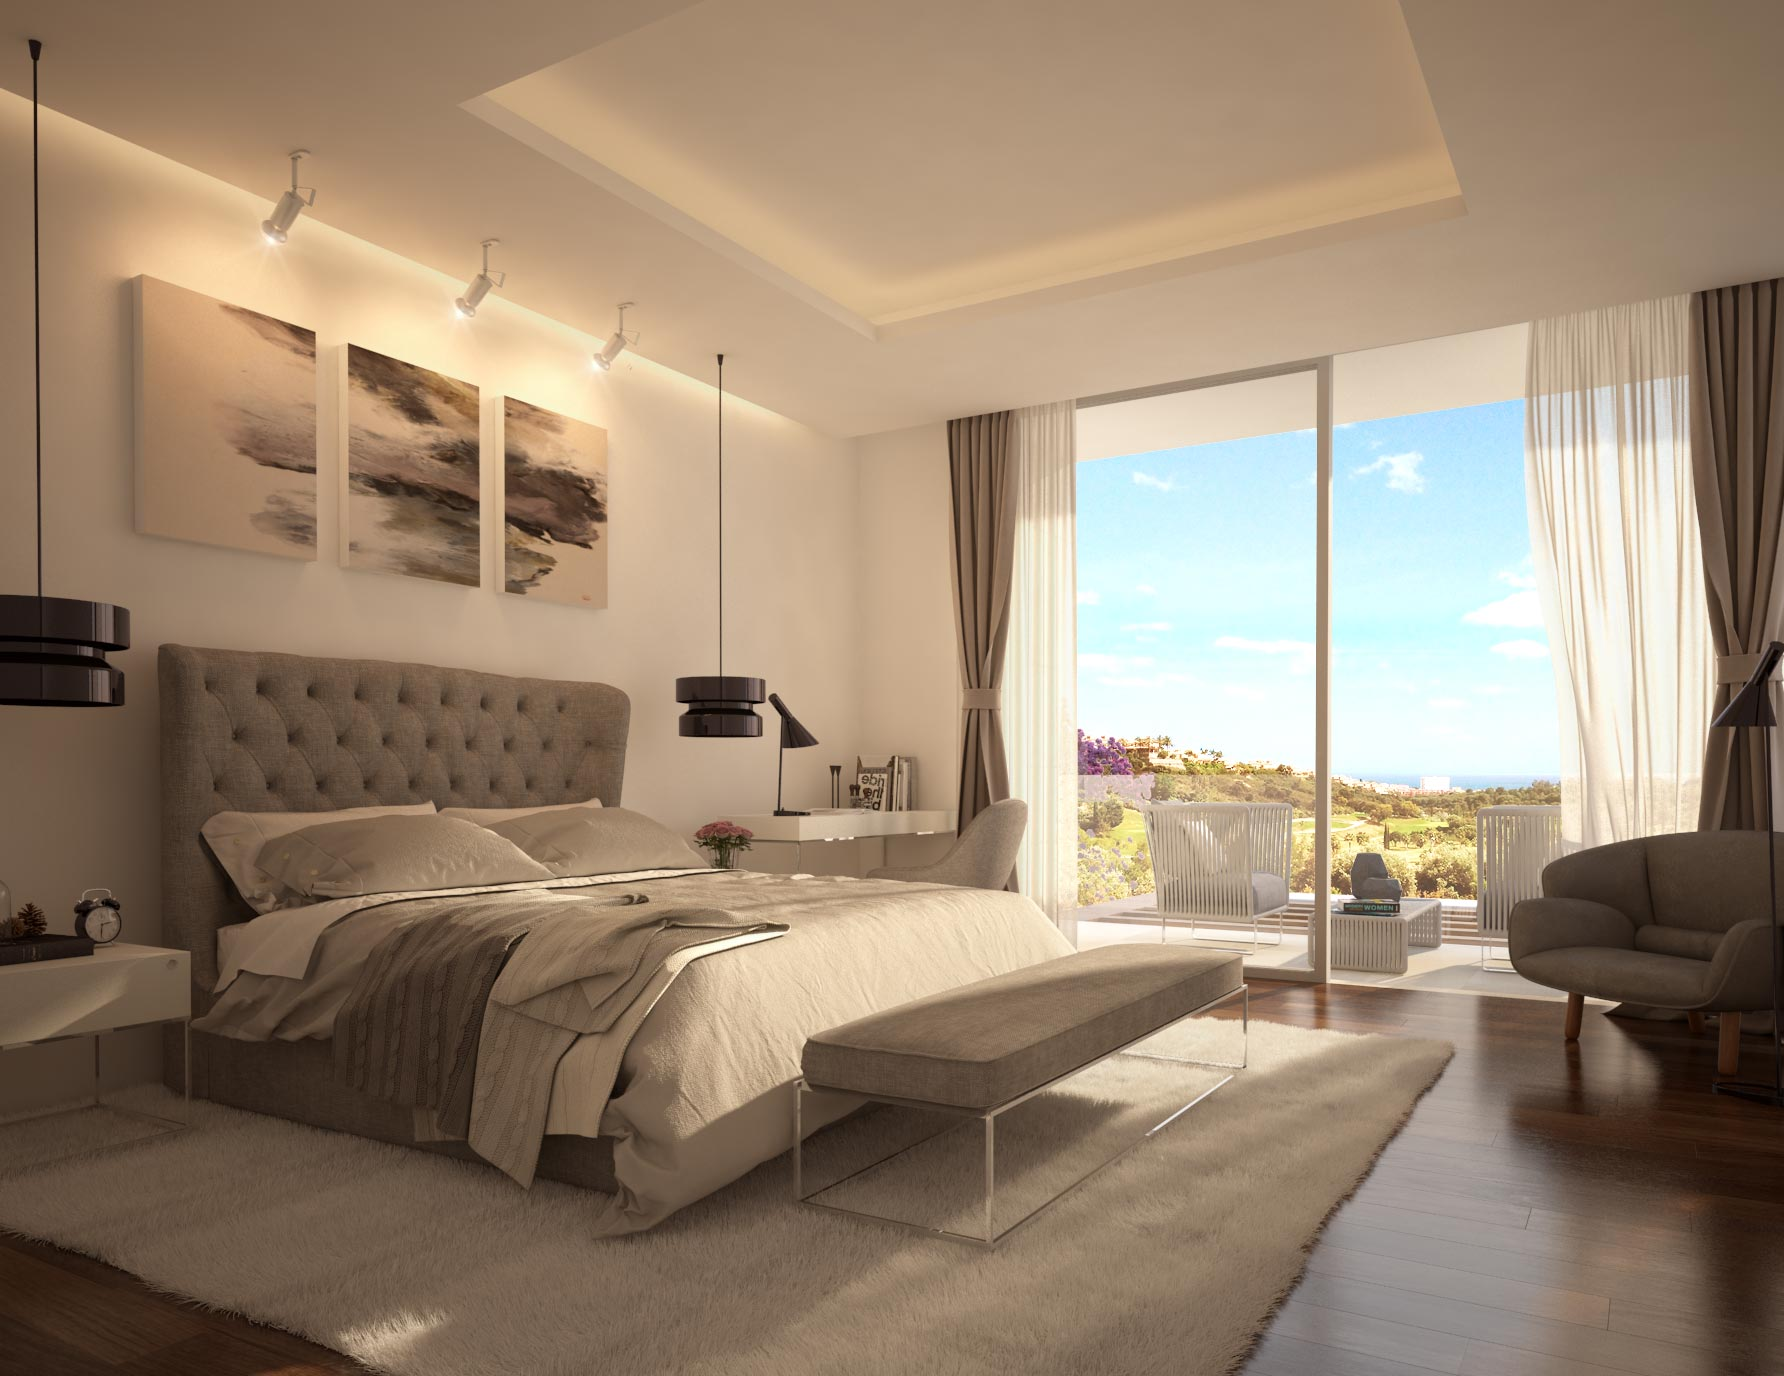 Interiorismo en casas de lujo en marbella areadesign for Casas de ensueno interiores